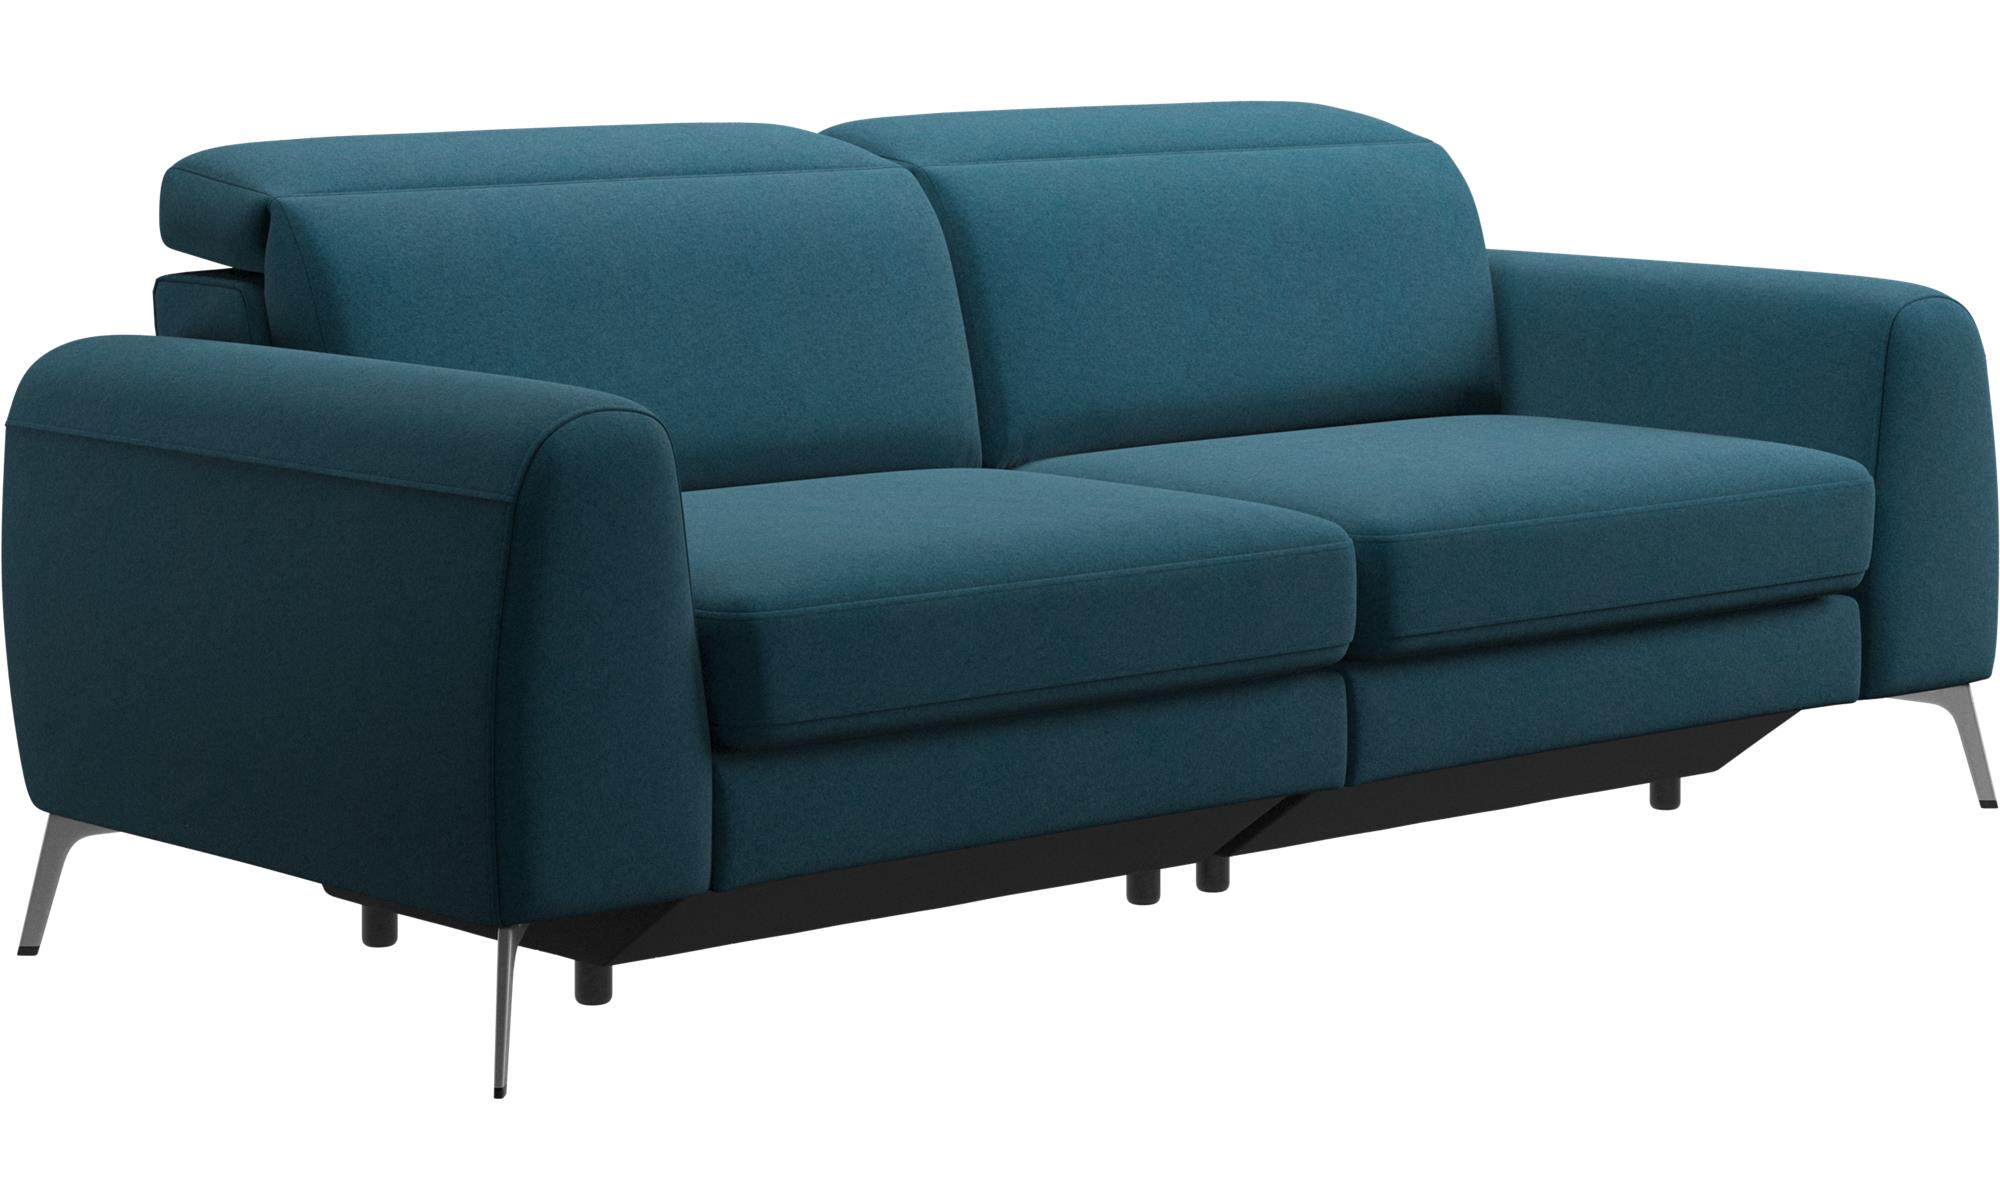 sofa headrest cheap beds in phoenix 3 seater sofas madison with adjustable